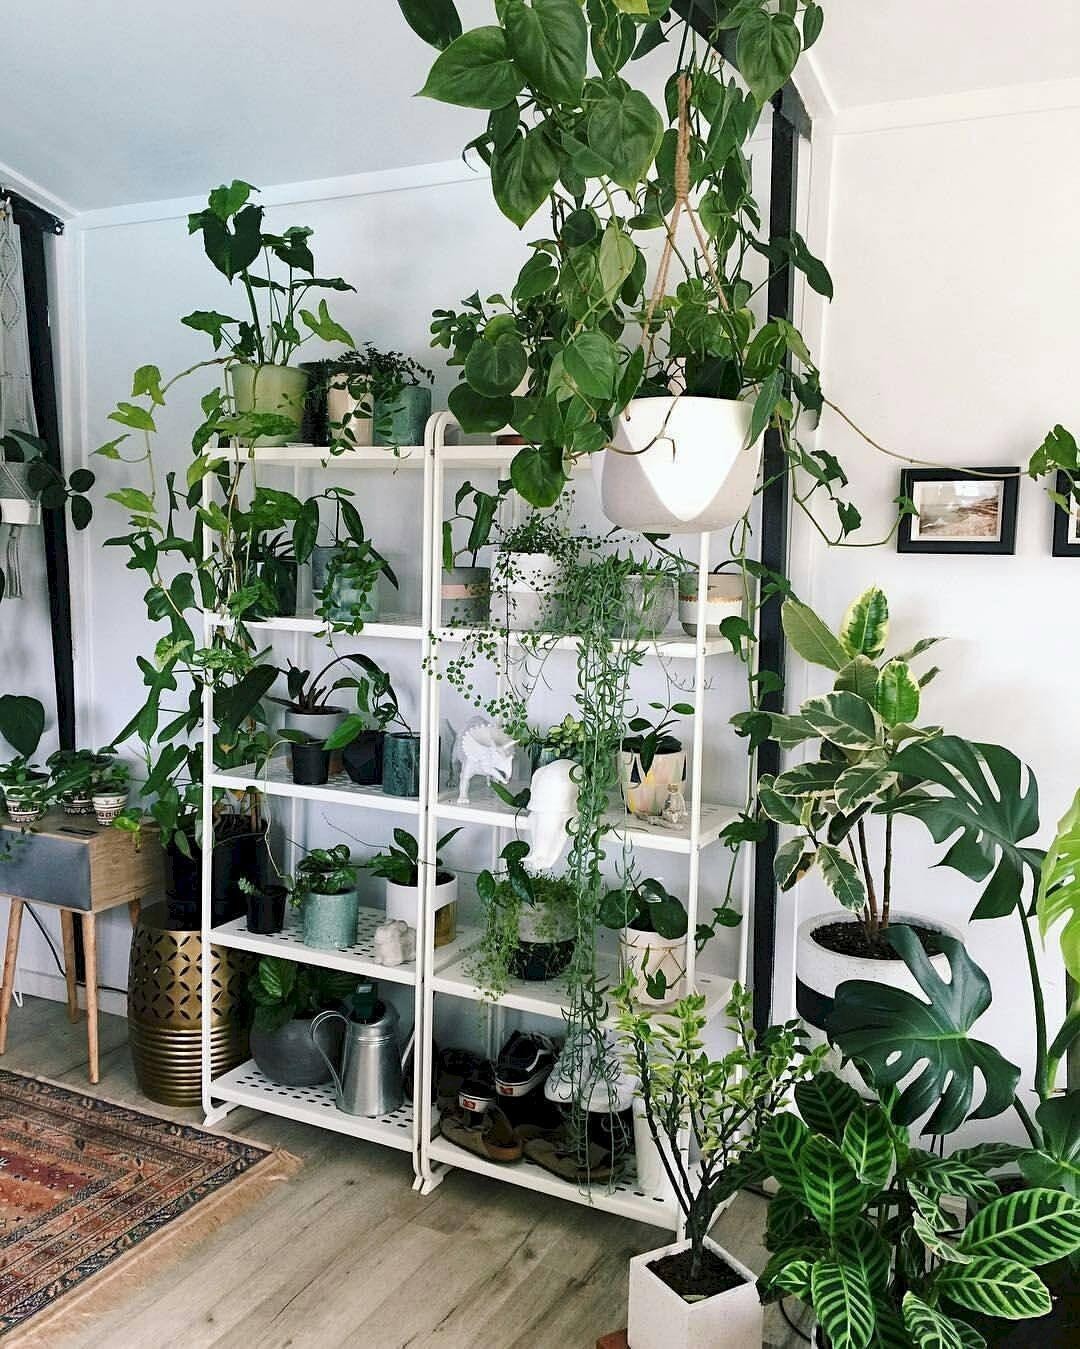 179 Diy Indoor Plant Display Ideas Borderline